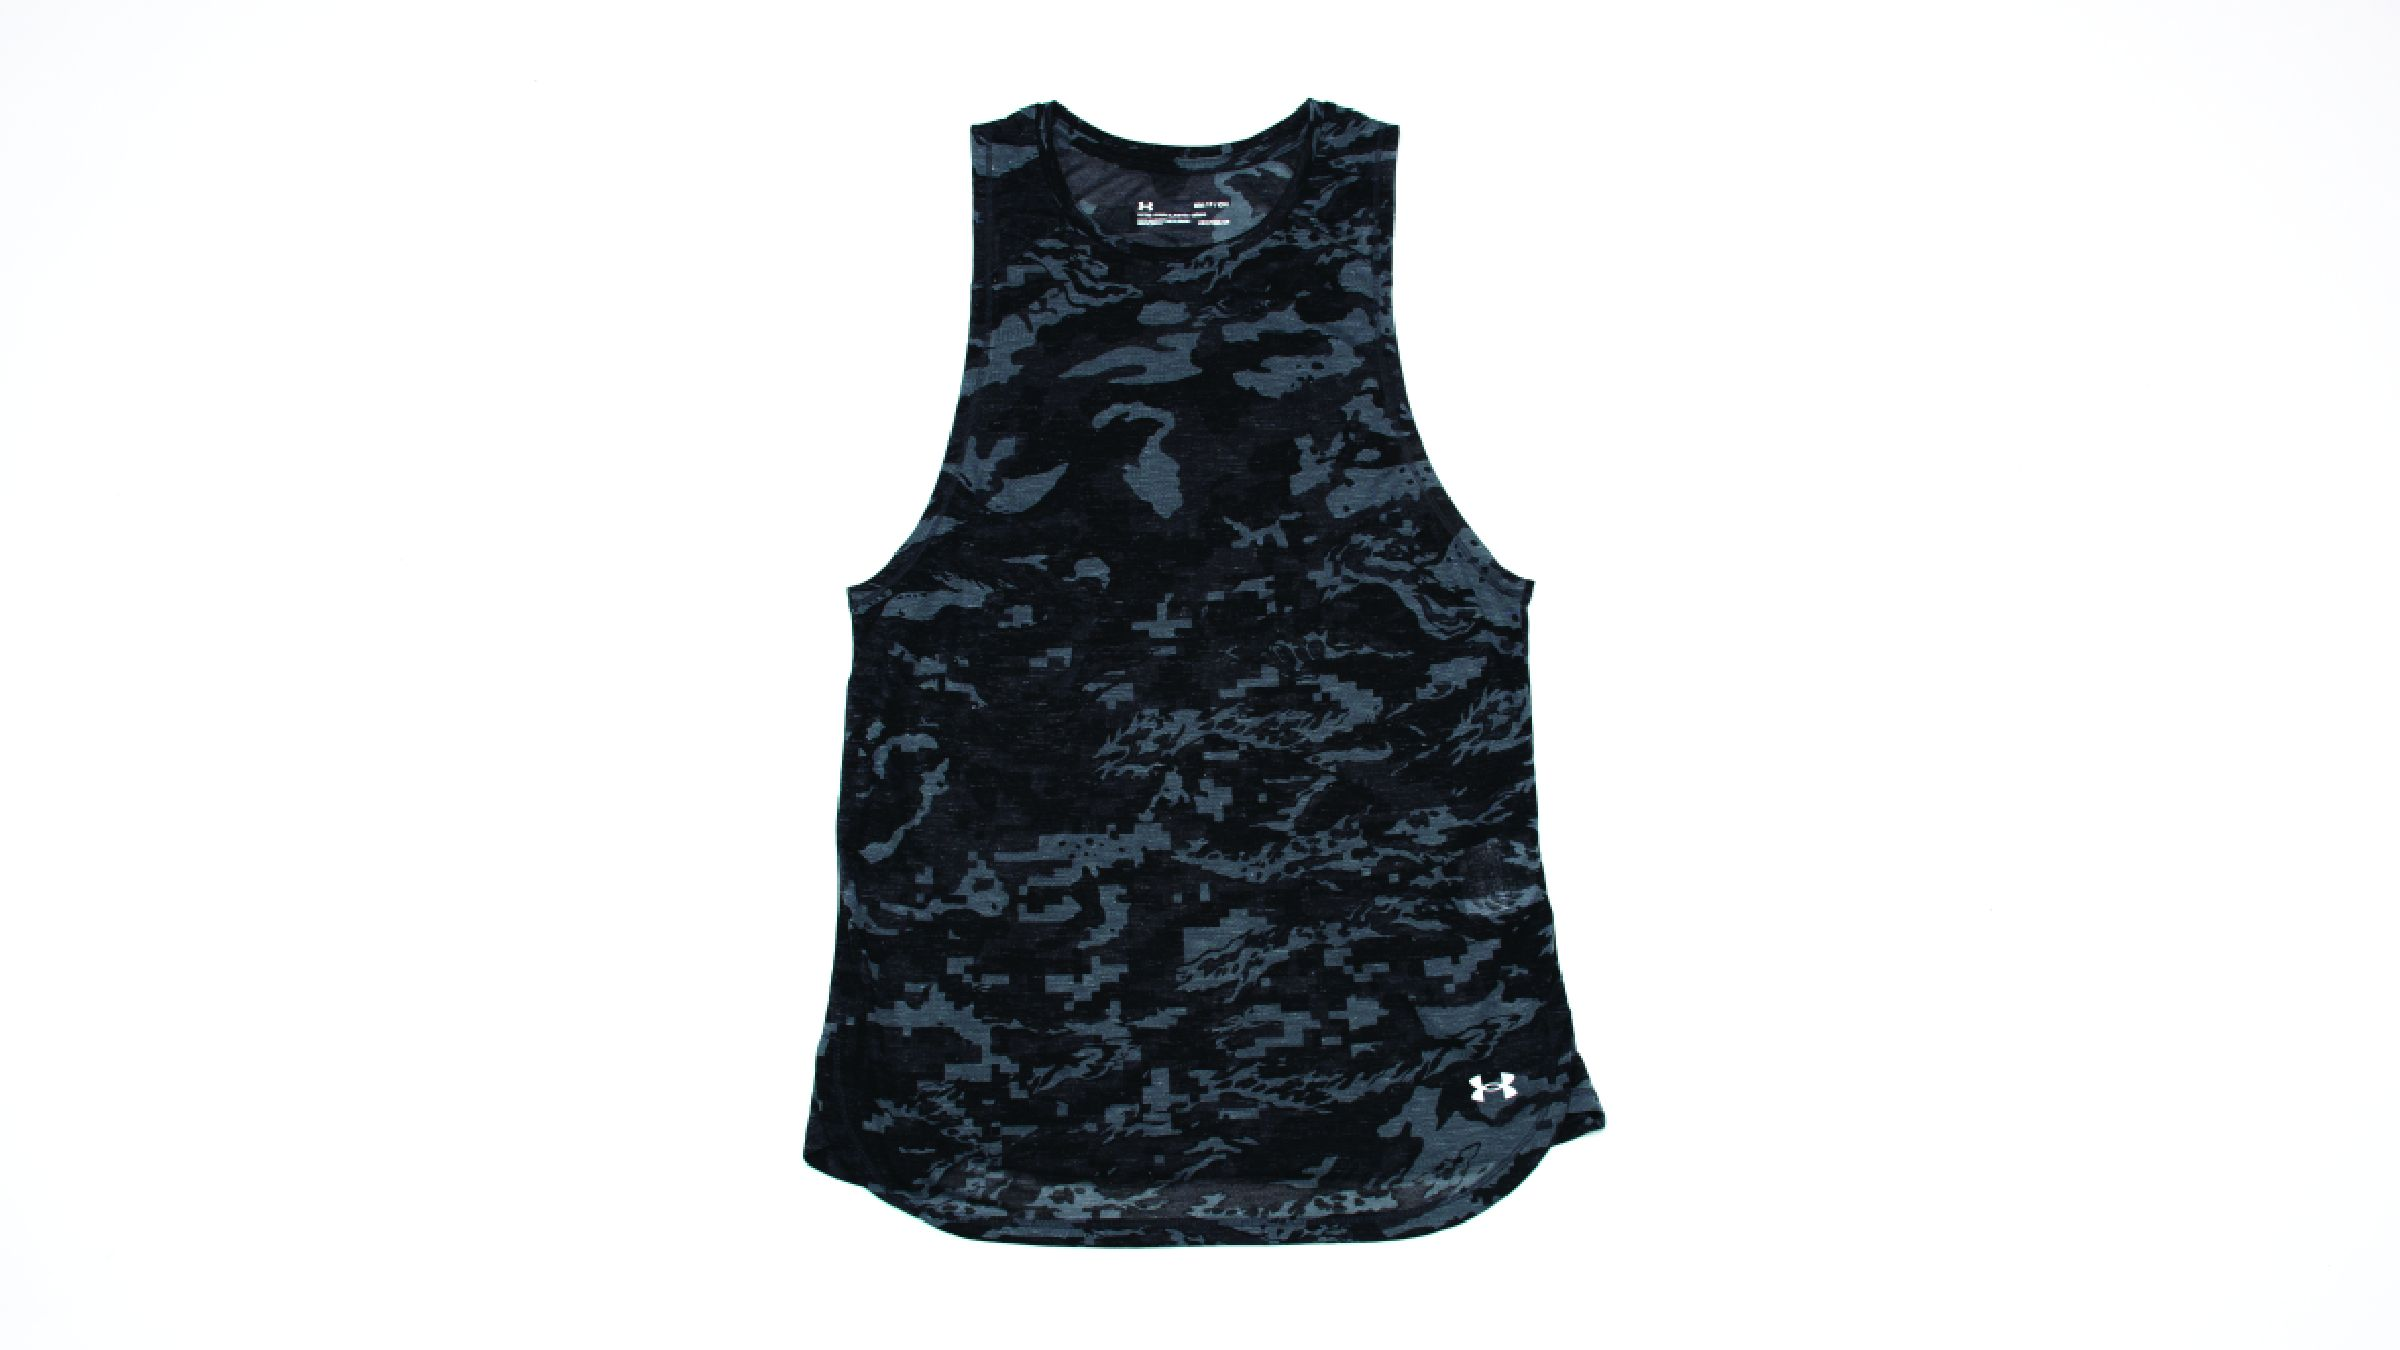 Black camo Under Armour Breeze Run Tank tank top